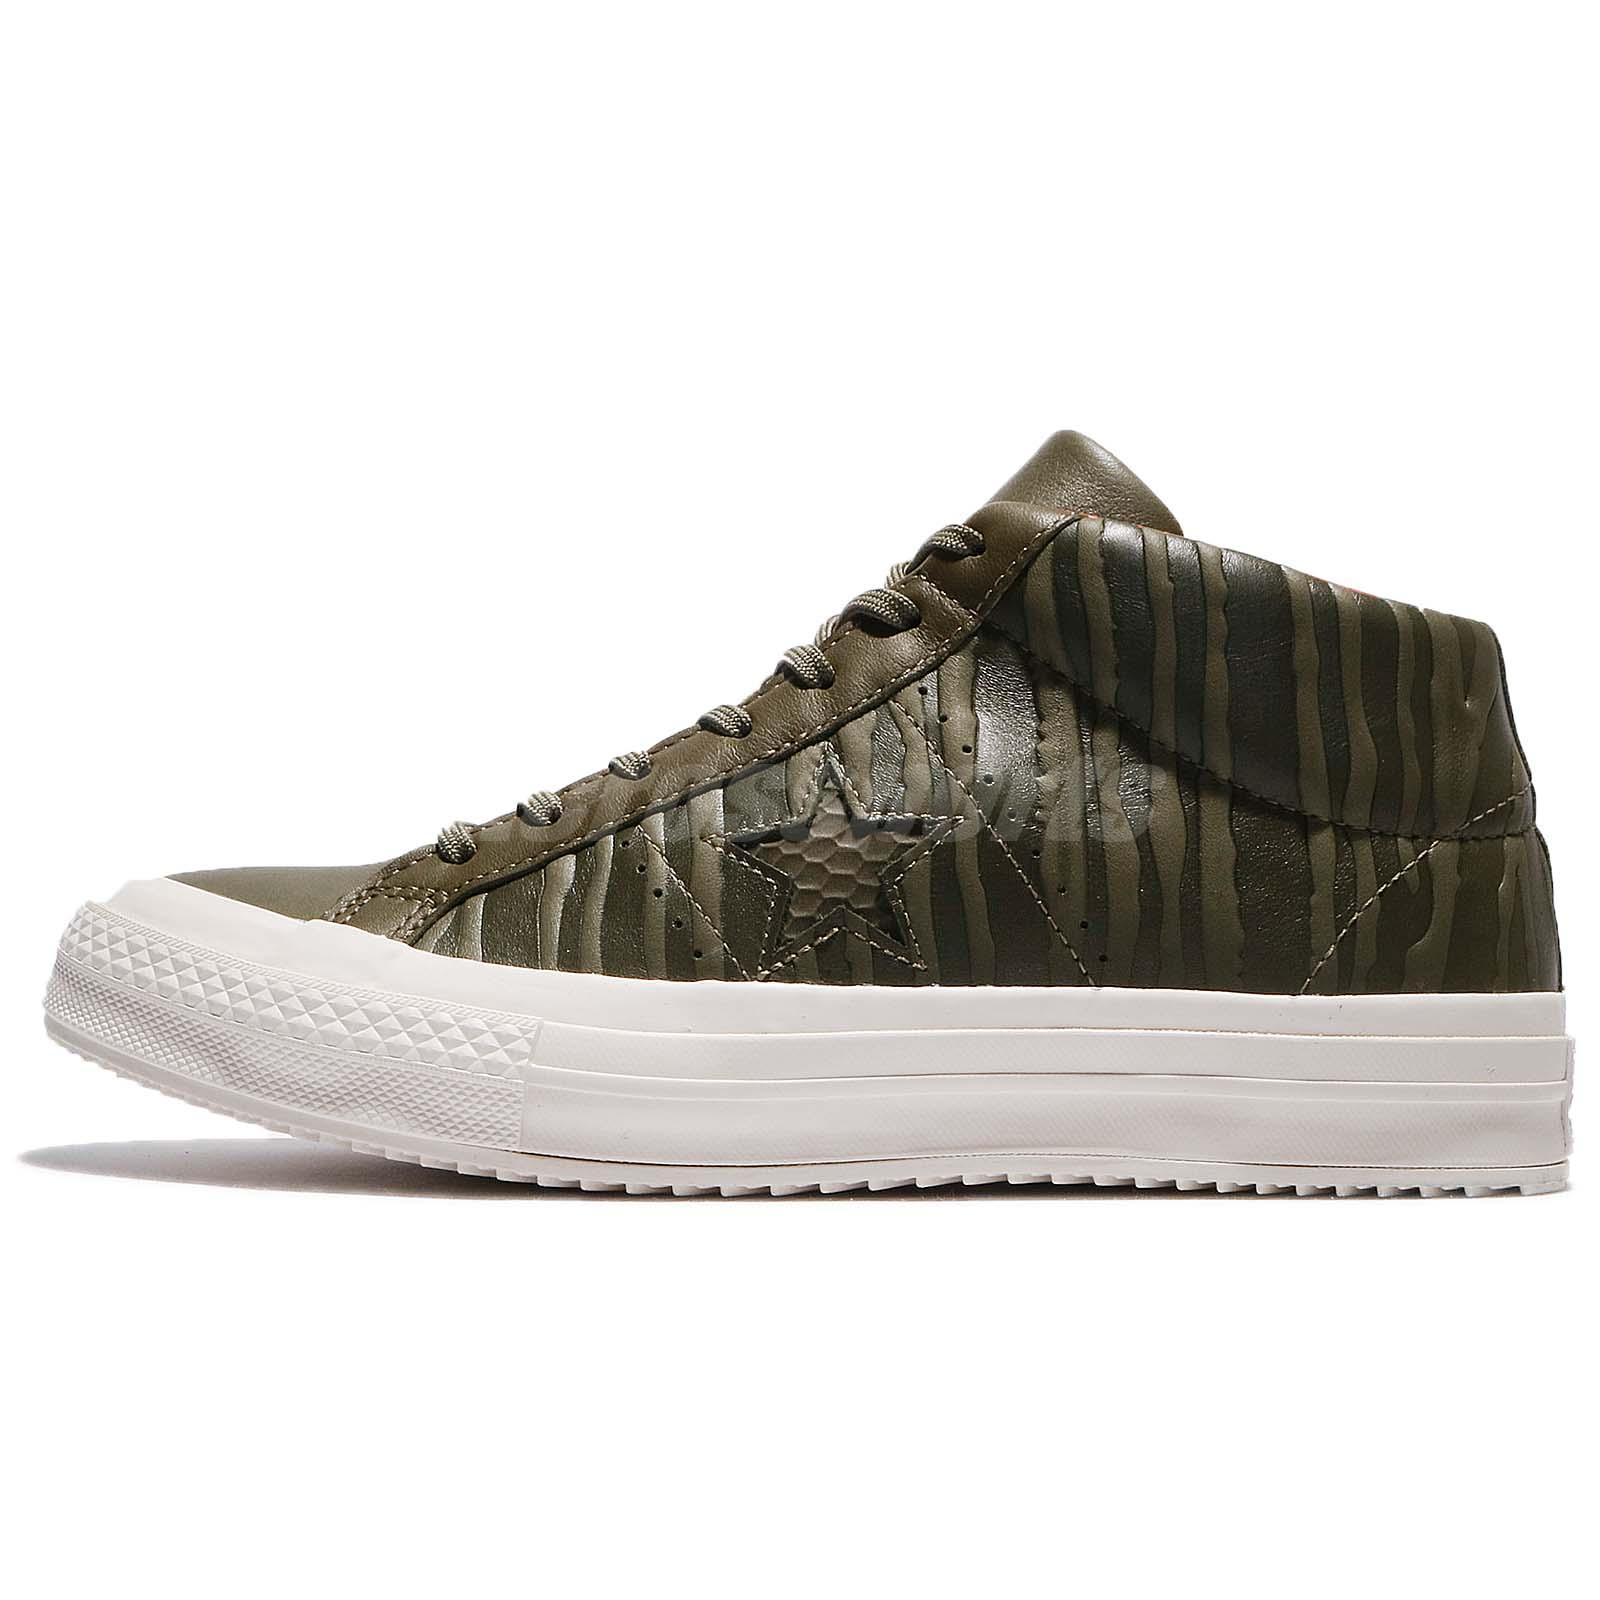 8e2477d2b5ed1e Converse One Star Mid Counter Climate Leather Olive Men Skate Boarding  158836C